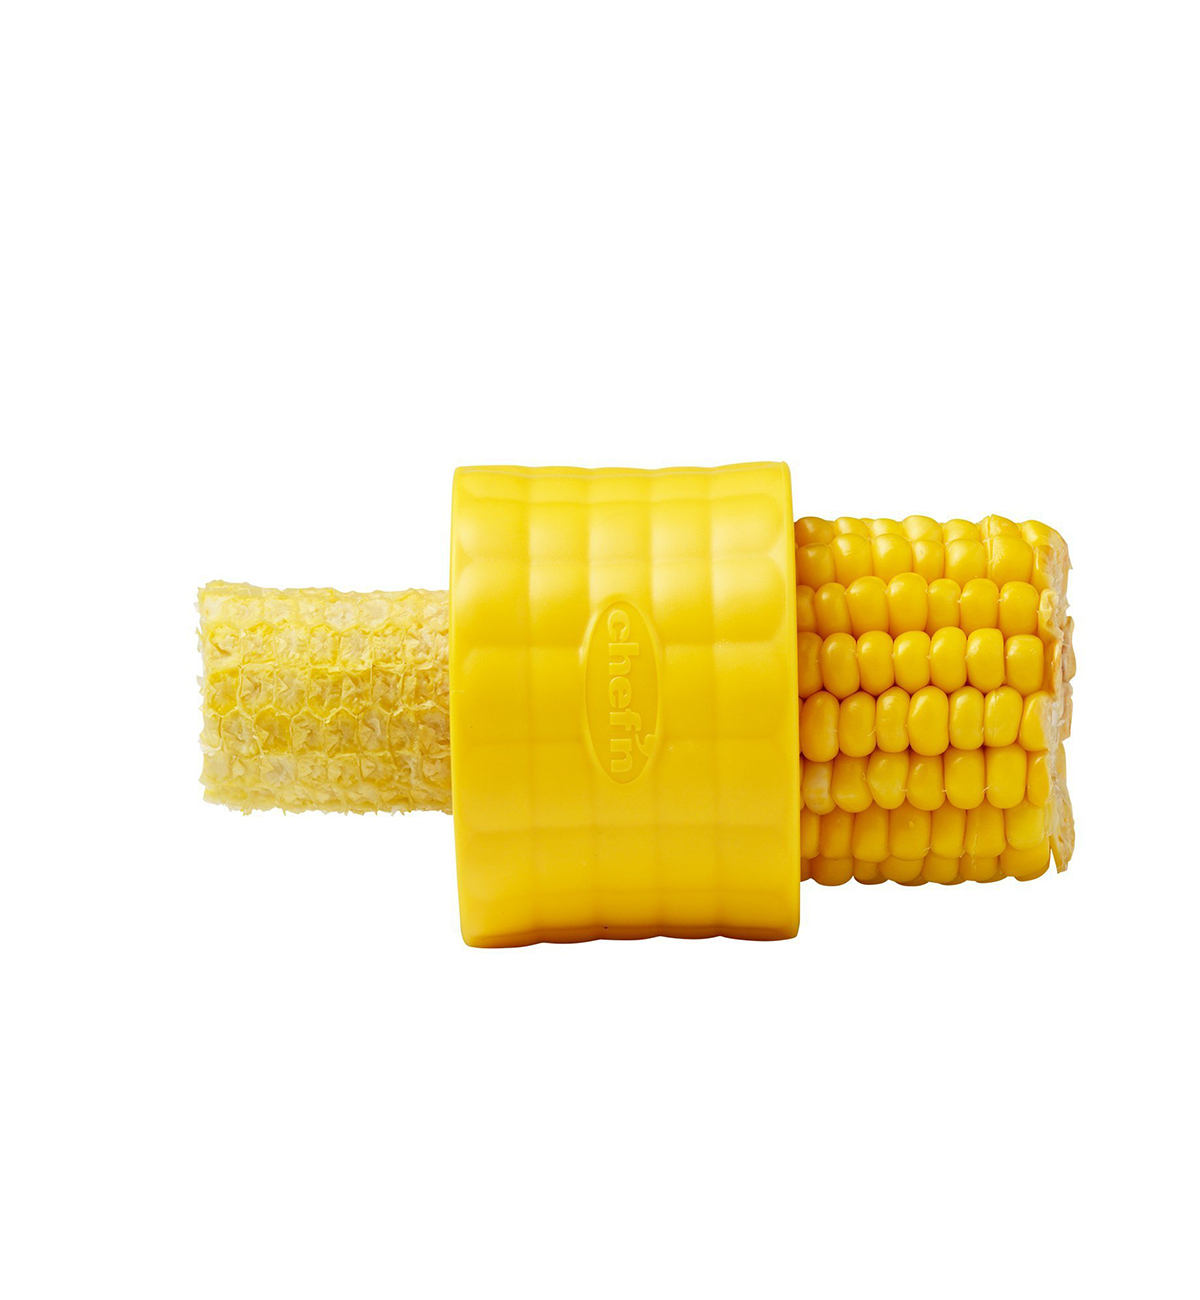 Amazon Best Seller, Corn Stripper